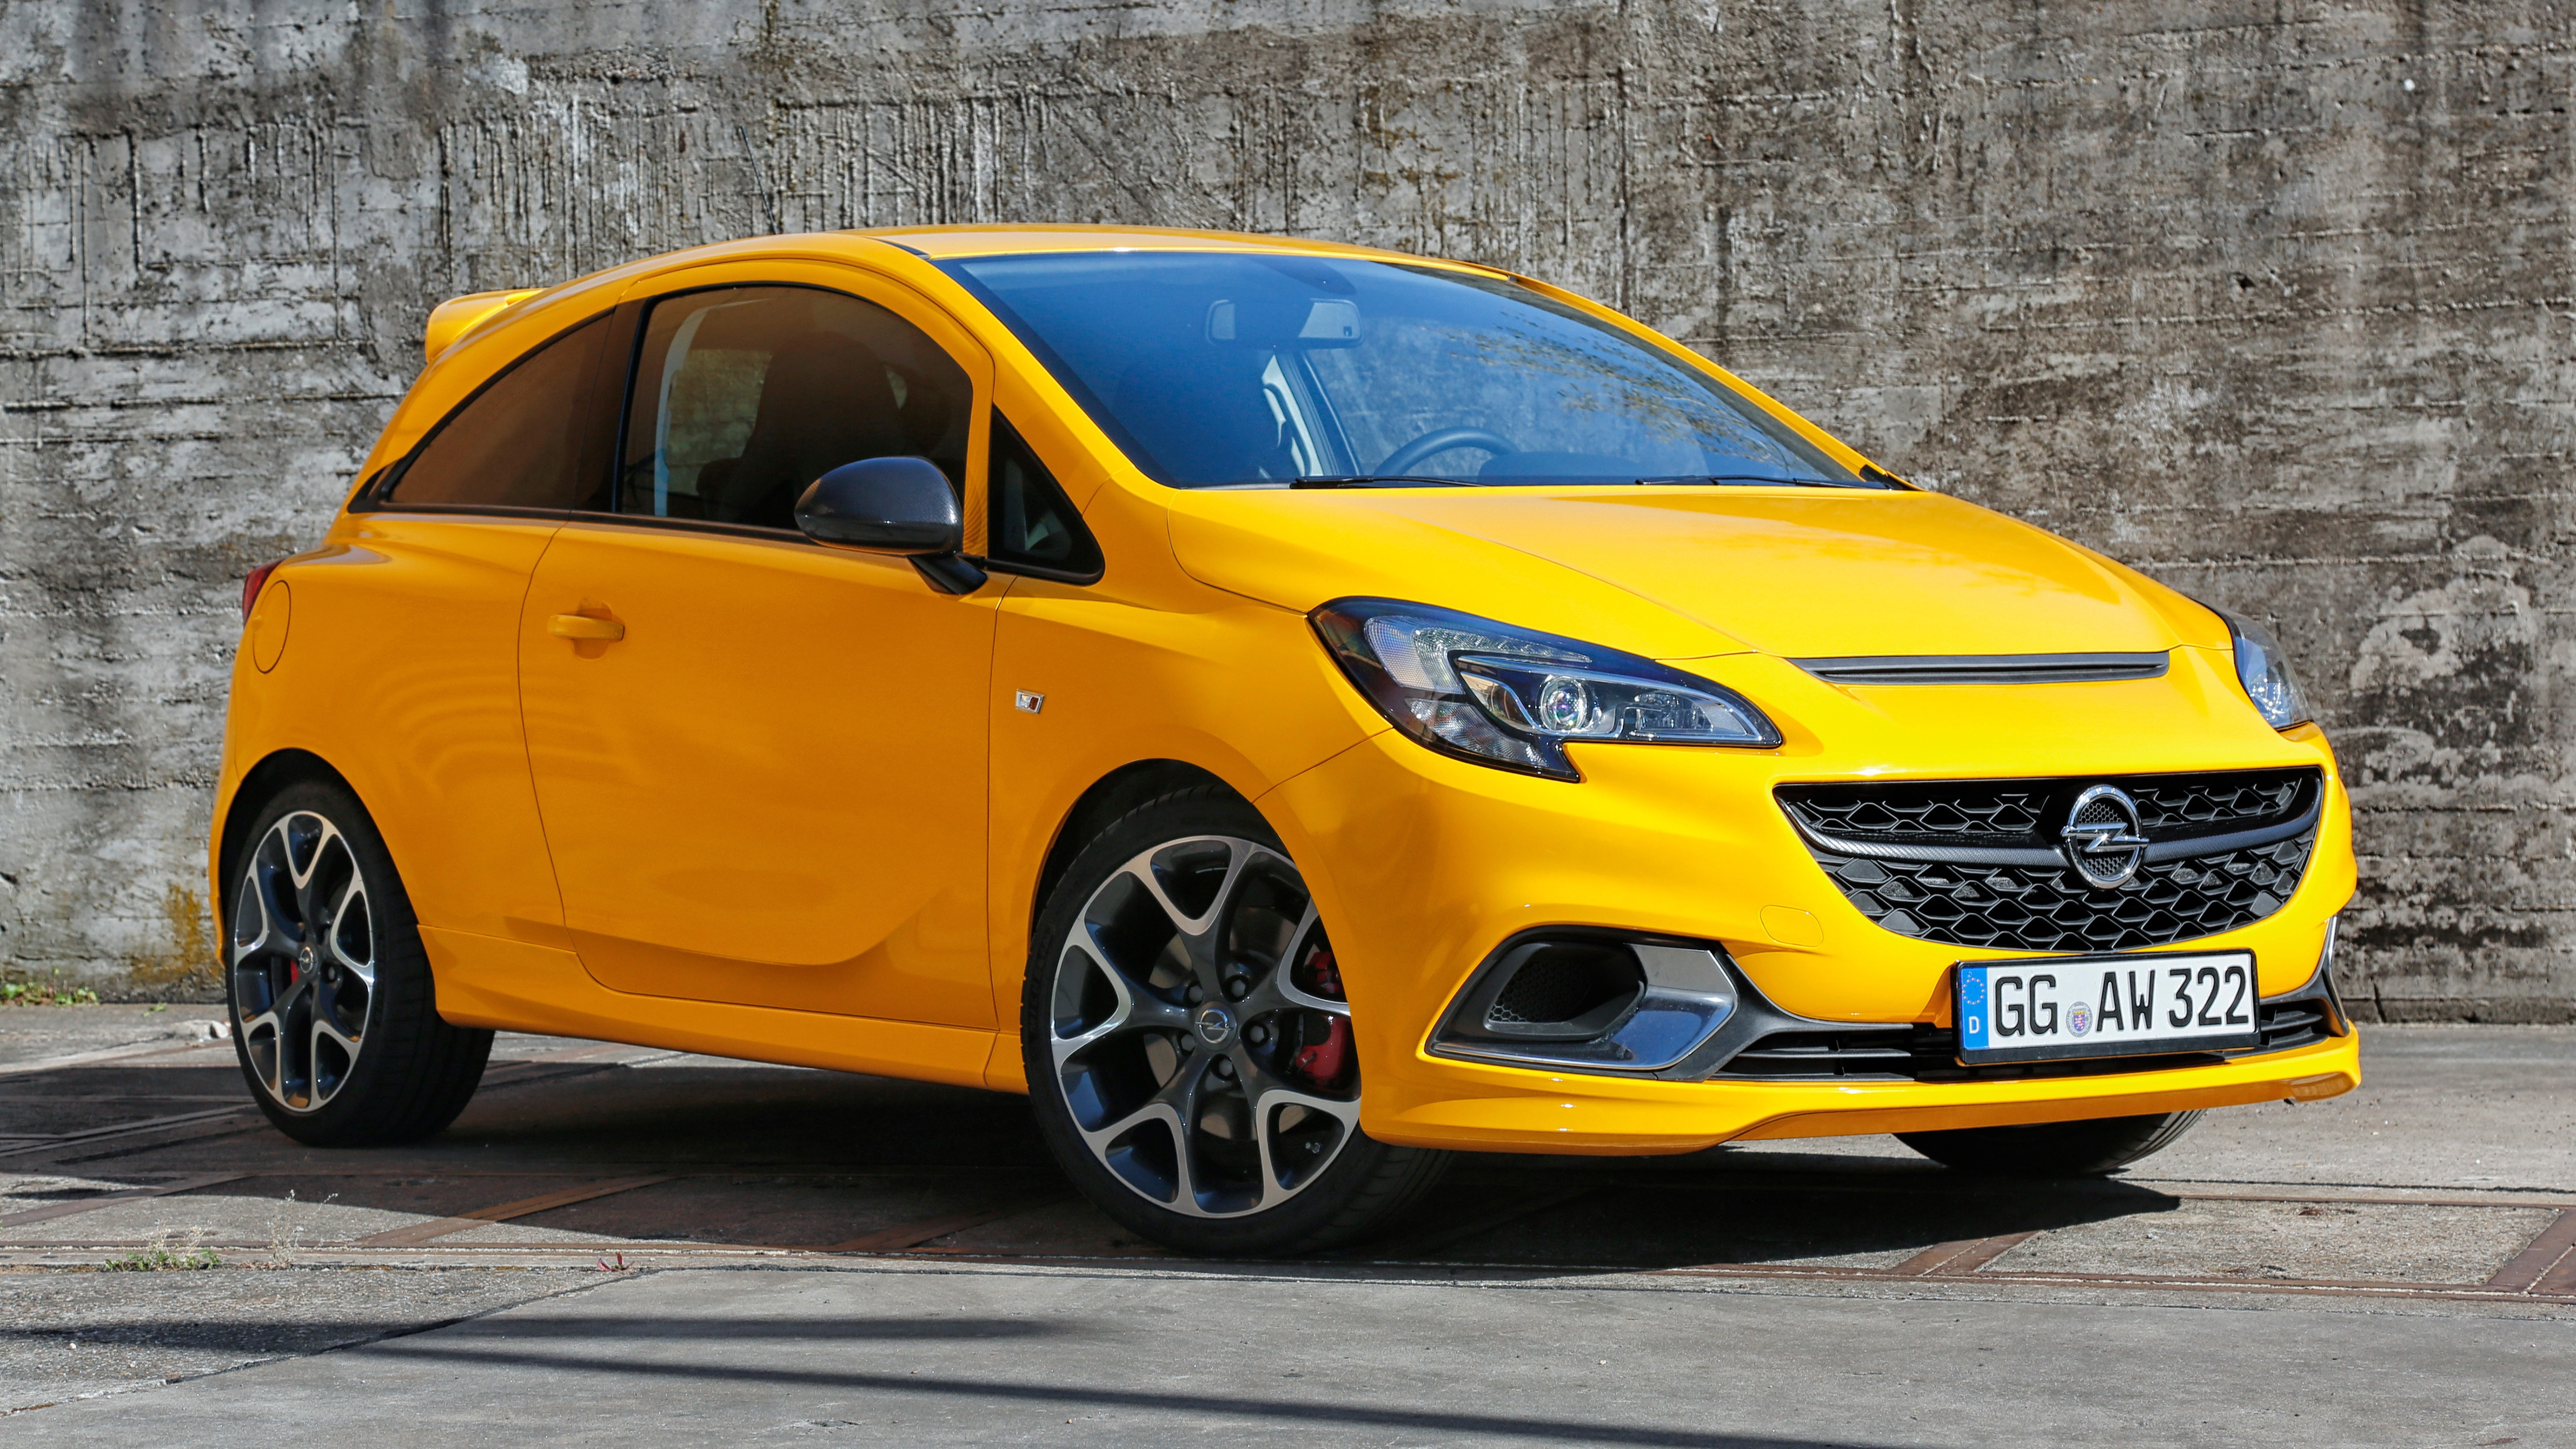 2018 opel corsa gsi packs opc sports chassis autoevolution. Black Bedroom Furniture Sets. Home Design Ideas